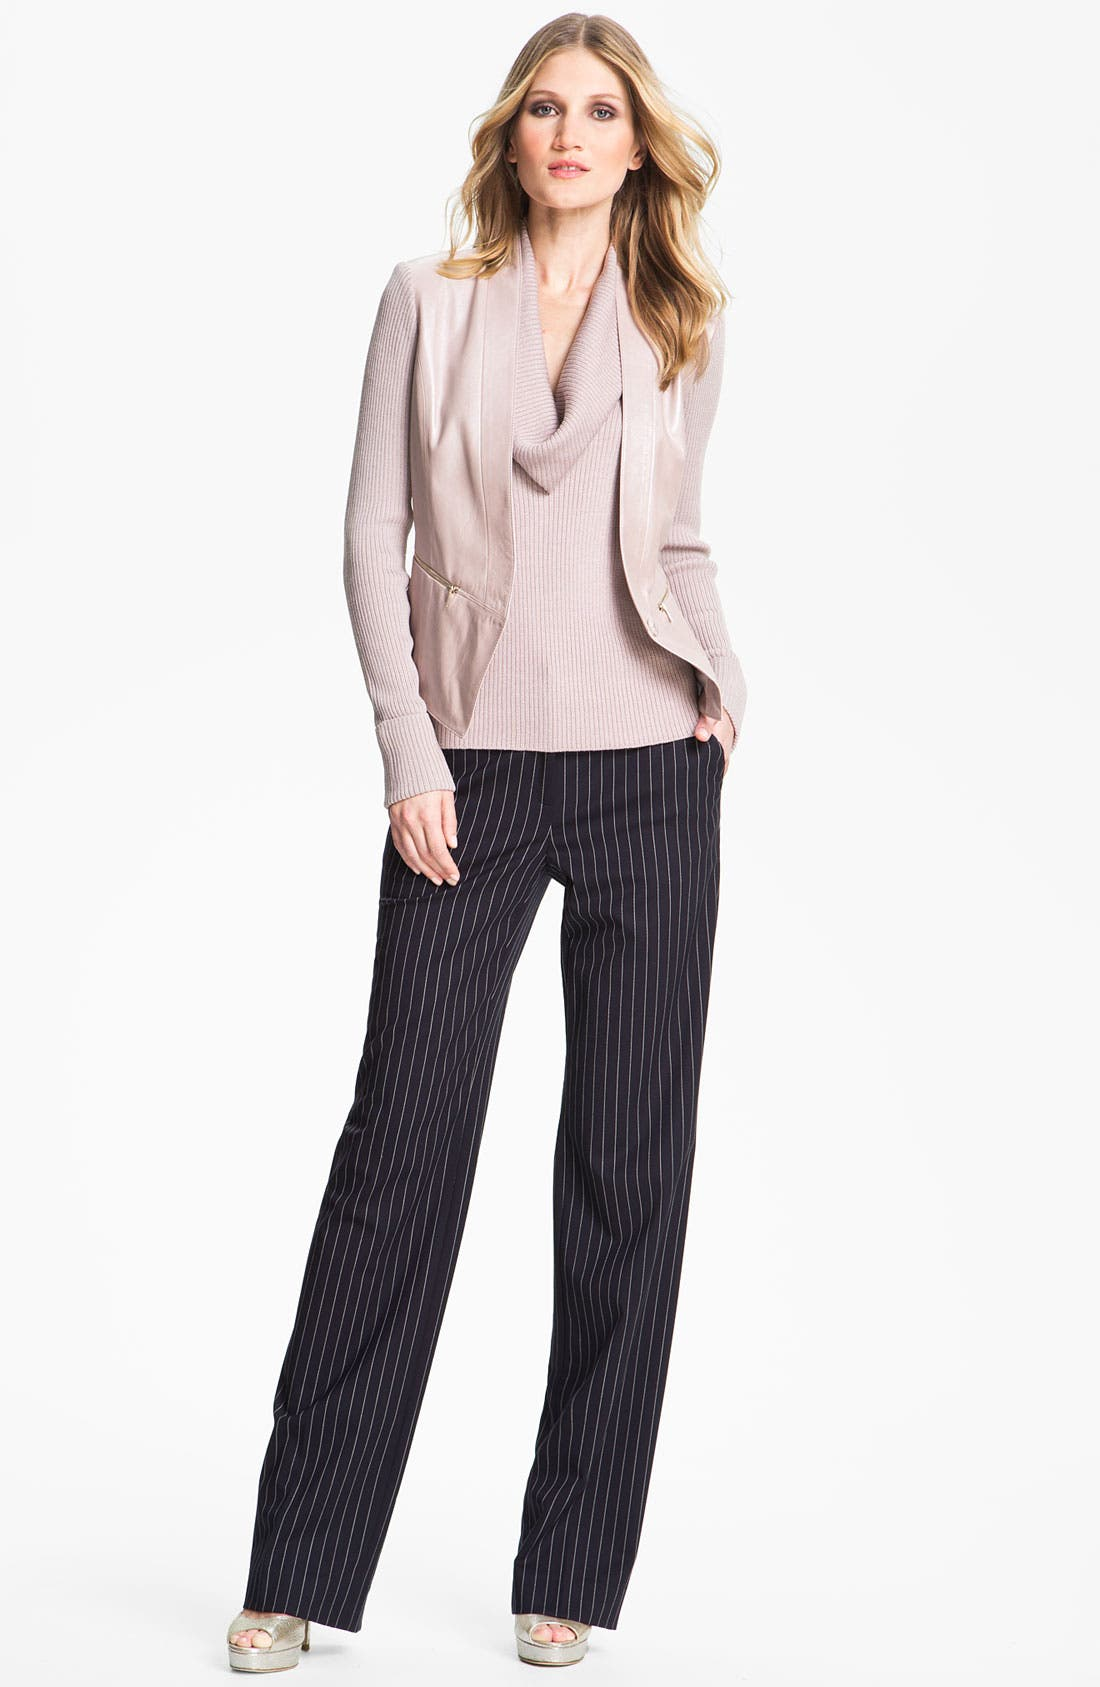 Alternate Image 1 Selected - St. John Collection 'Shelley' Pinstripe Flare Leg Pants